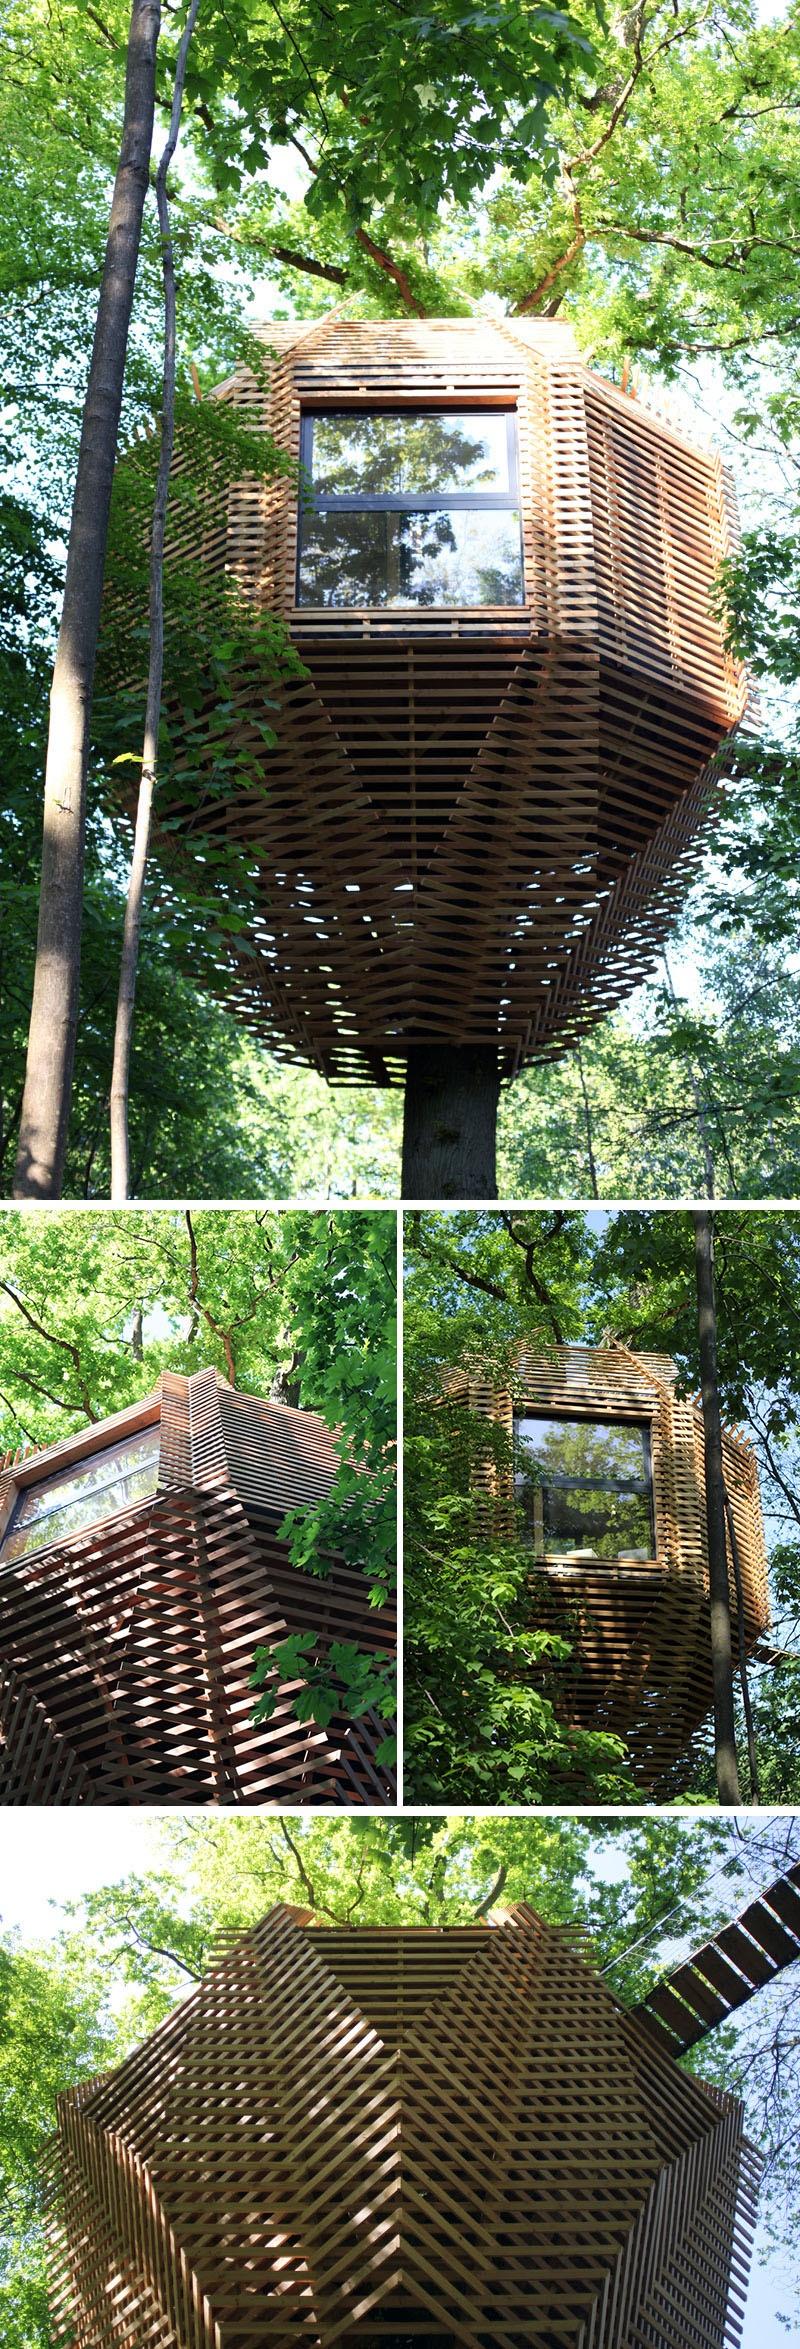 modern-architectural-wood-tree-house-170118-1246-02_1